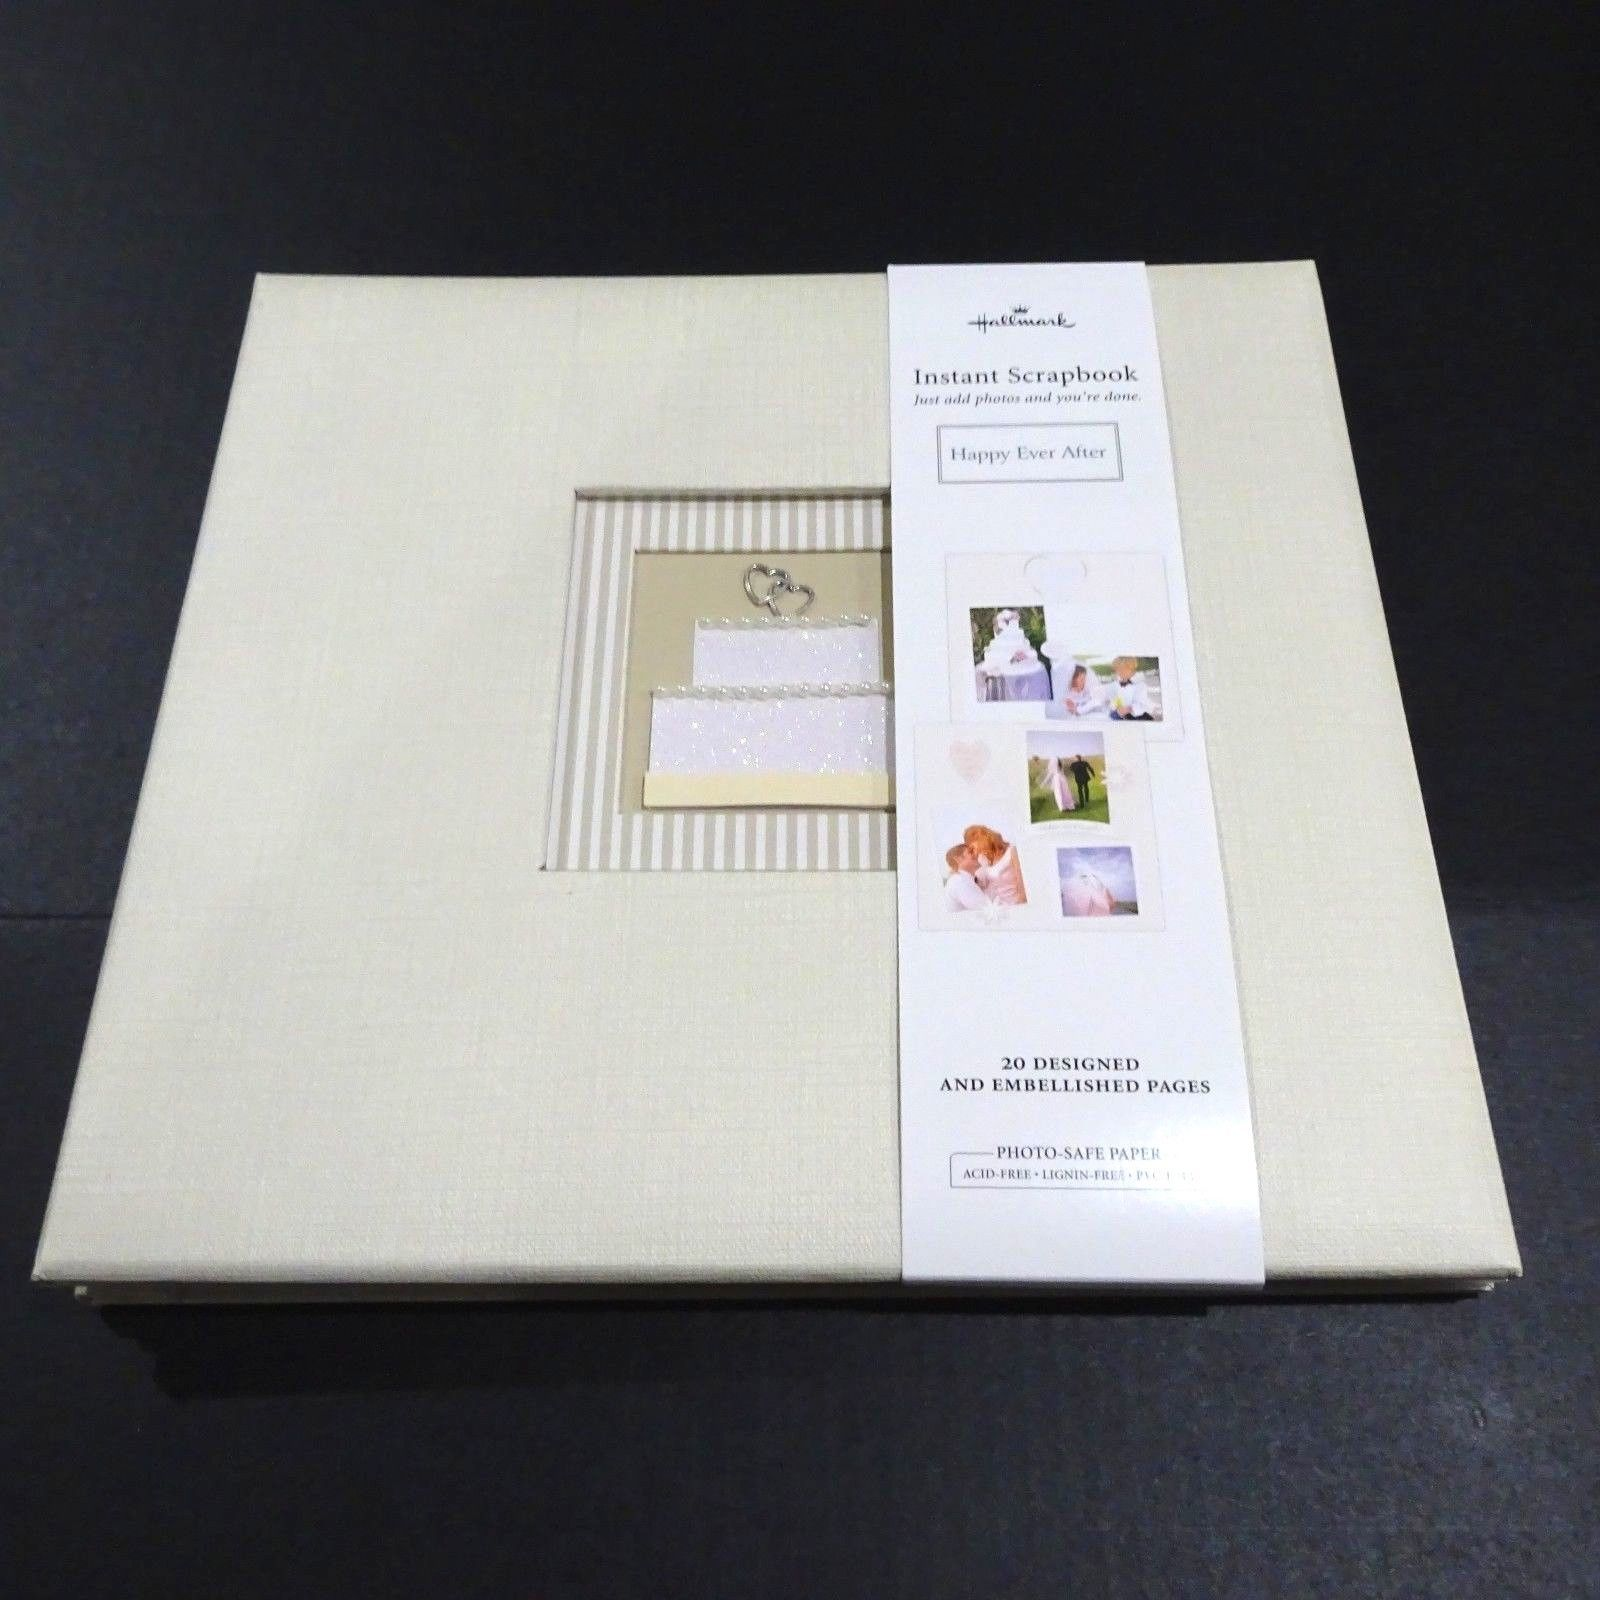 Hallmark Instant Scrapbook Happy Ever After And Similar Items